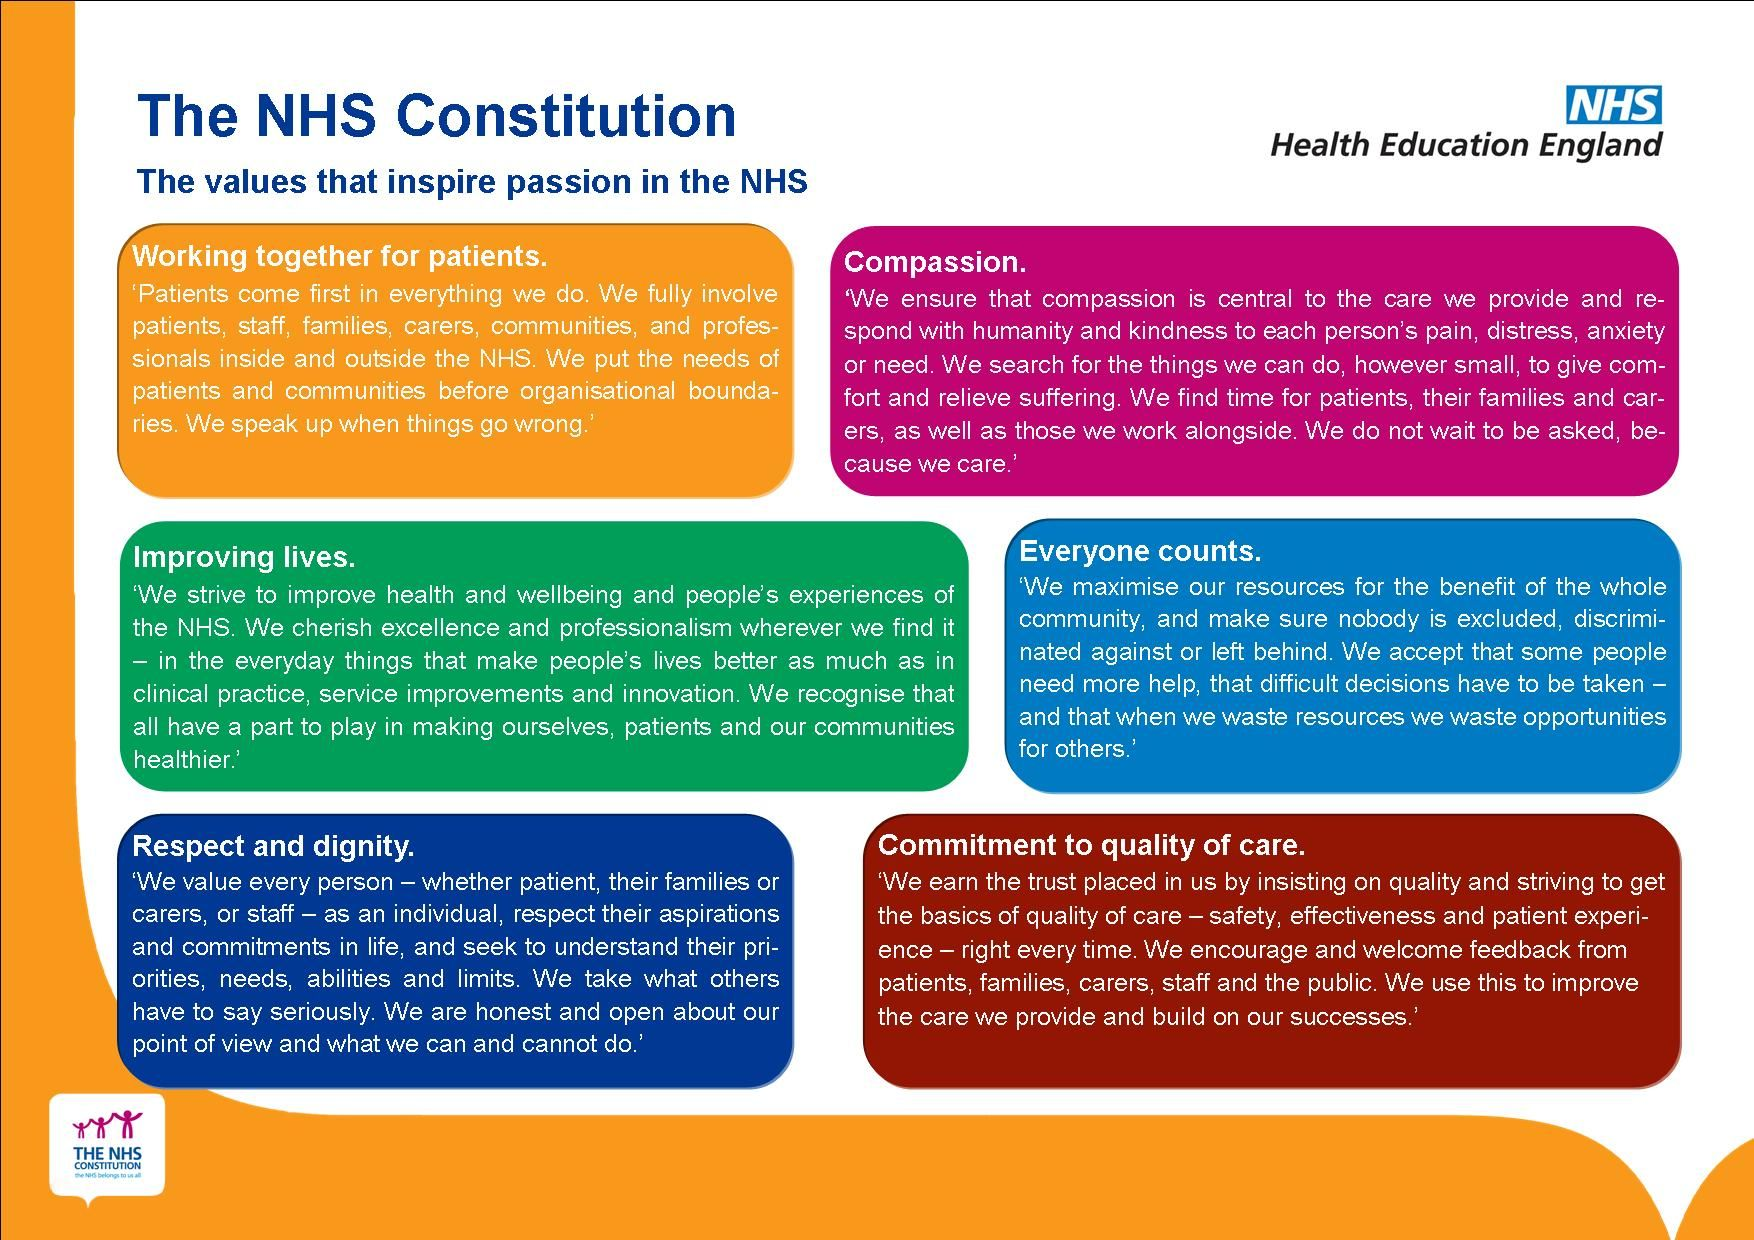 Six Nhs Values Explained By The Nhs Constitution Nhs